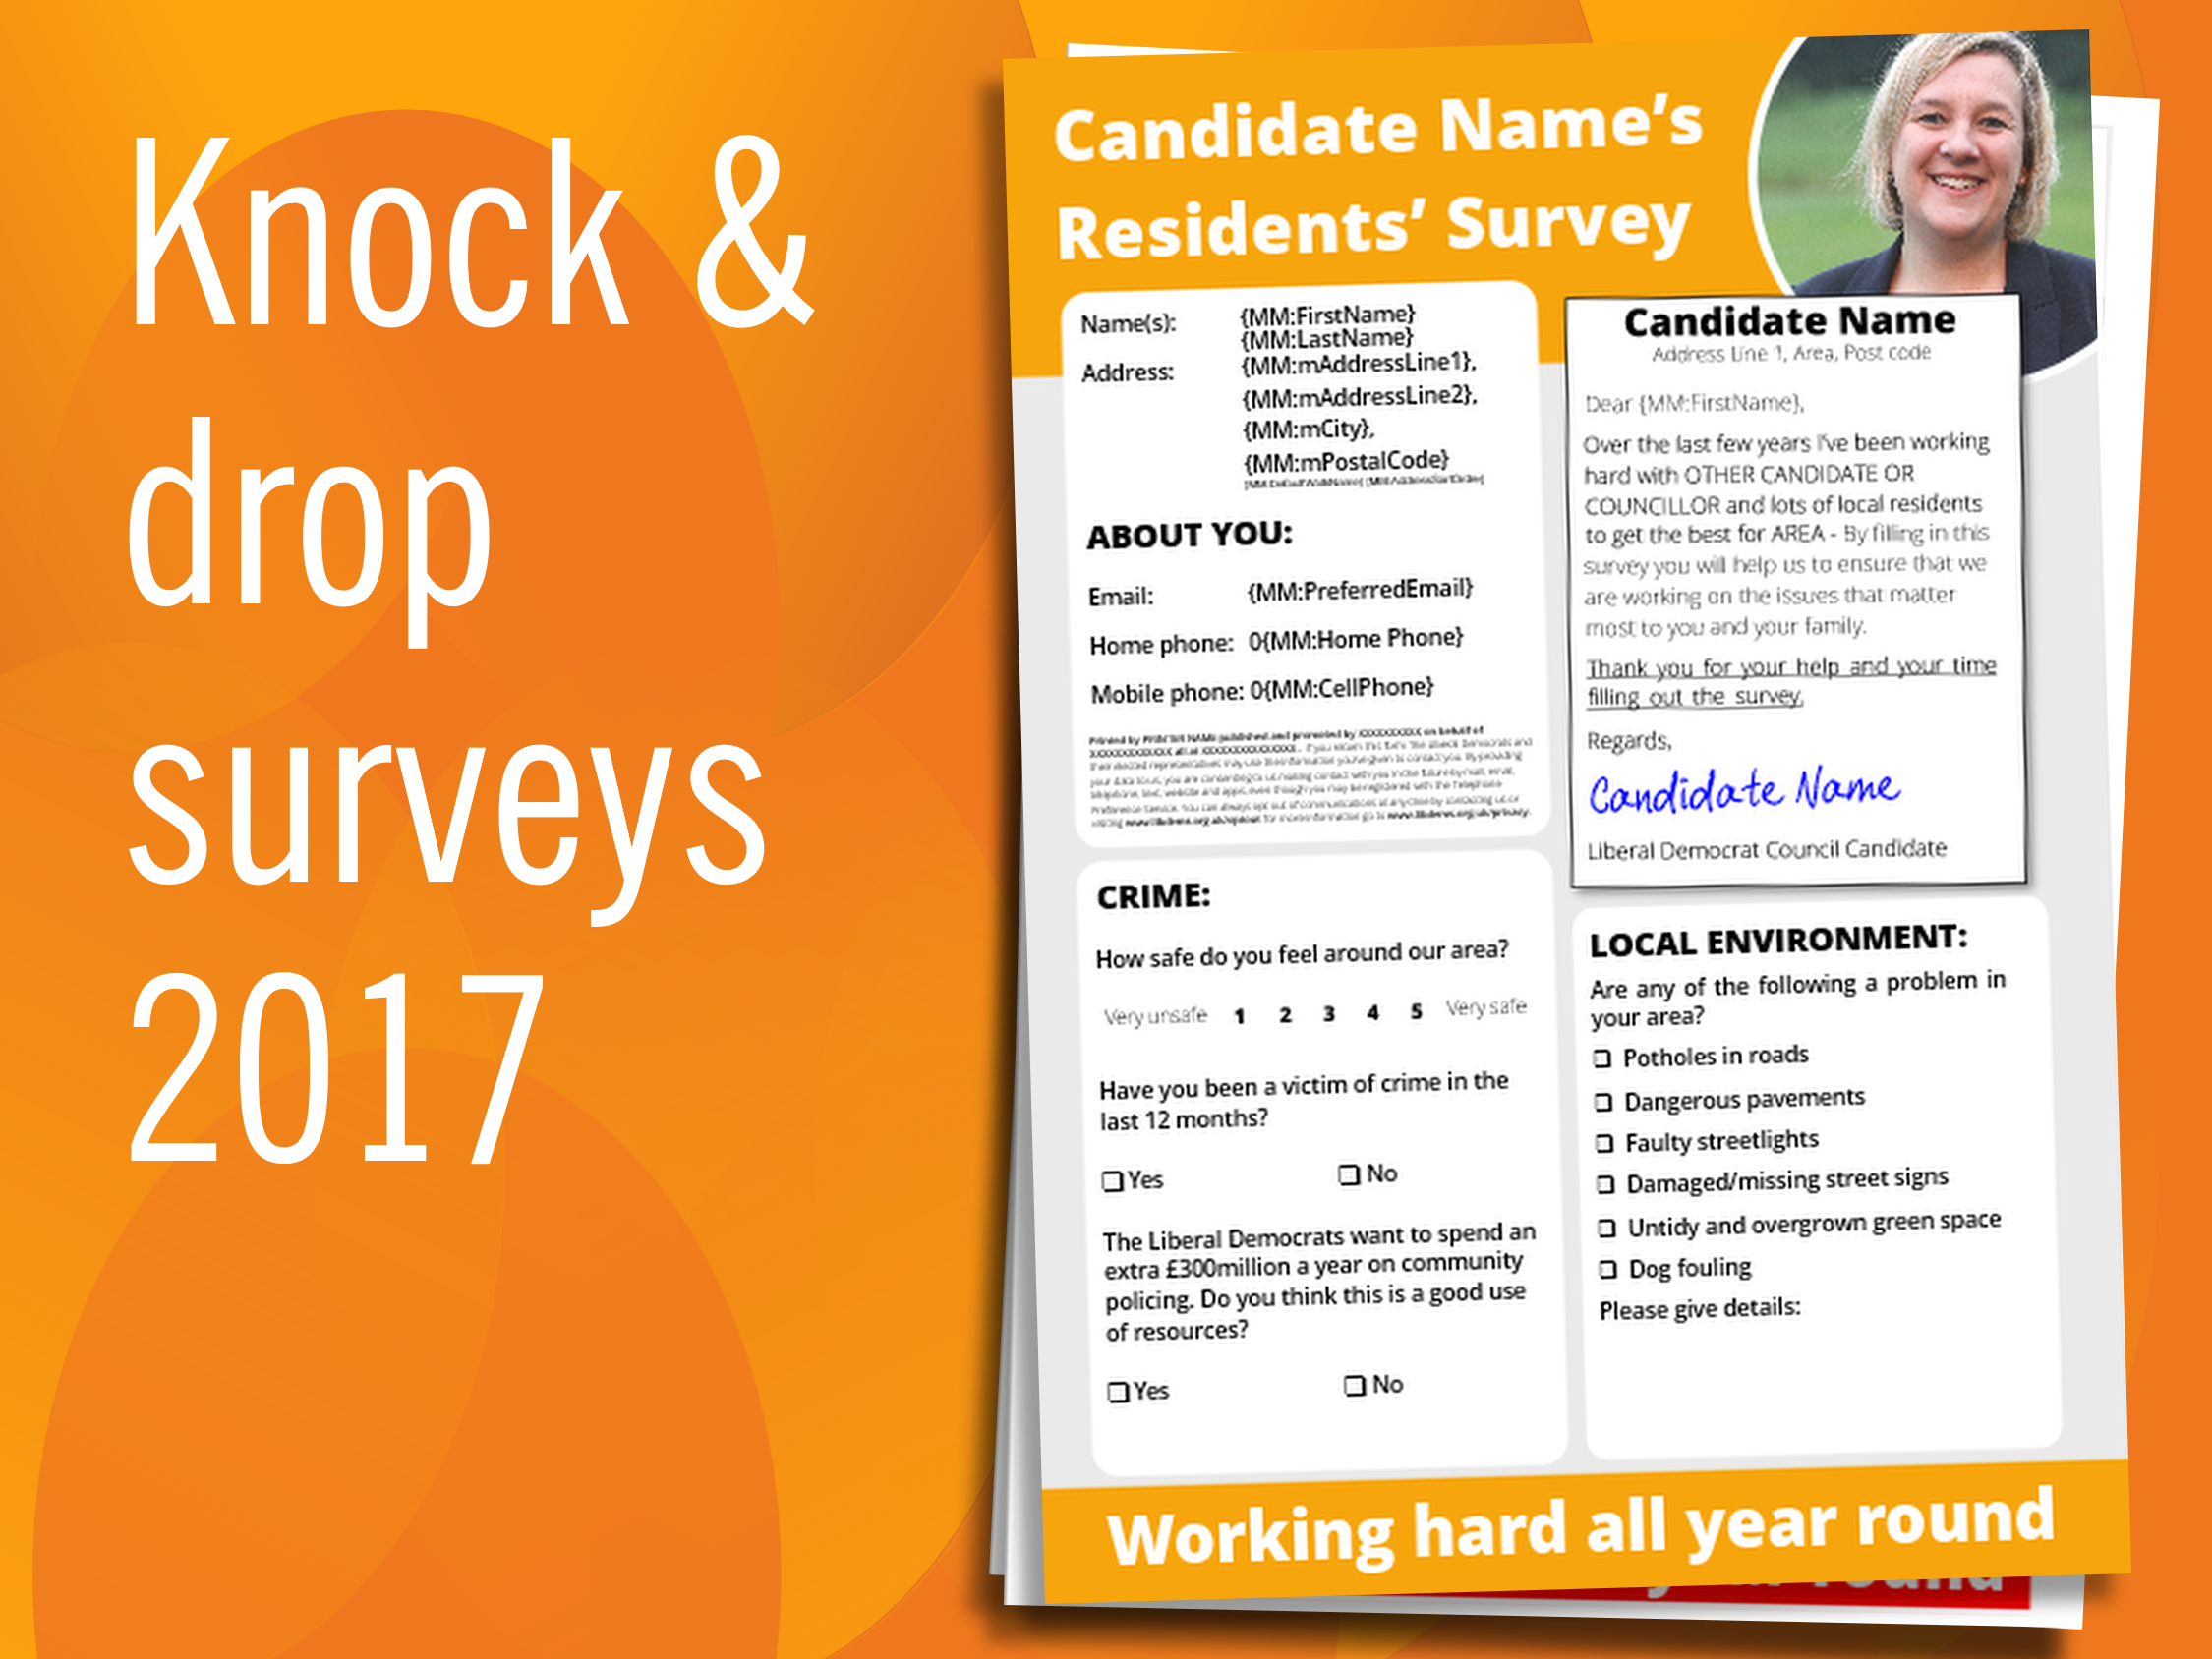 RESOURCES: Knock and drop survey templates